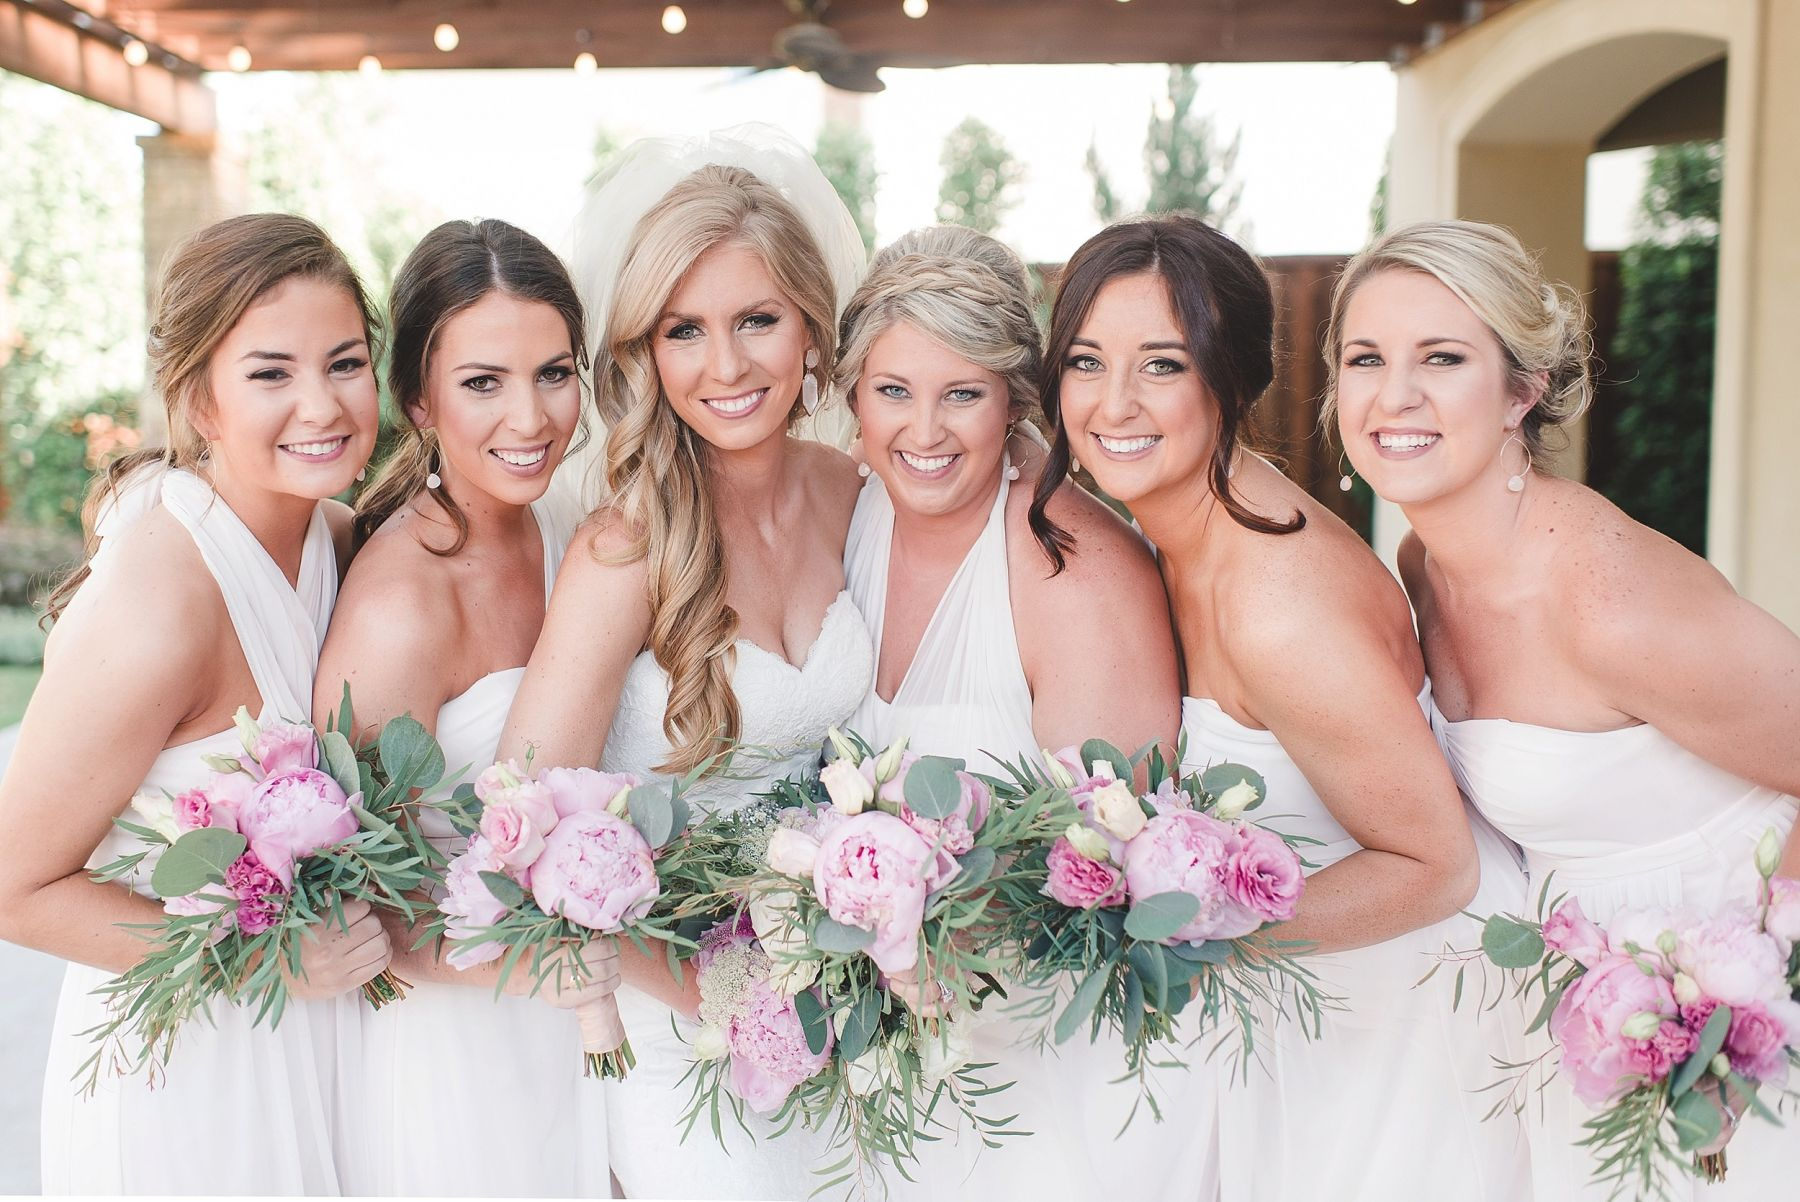 Real Wedding Bridal Party in Blush